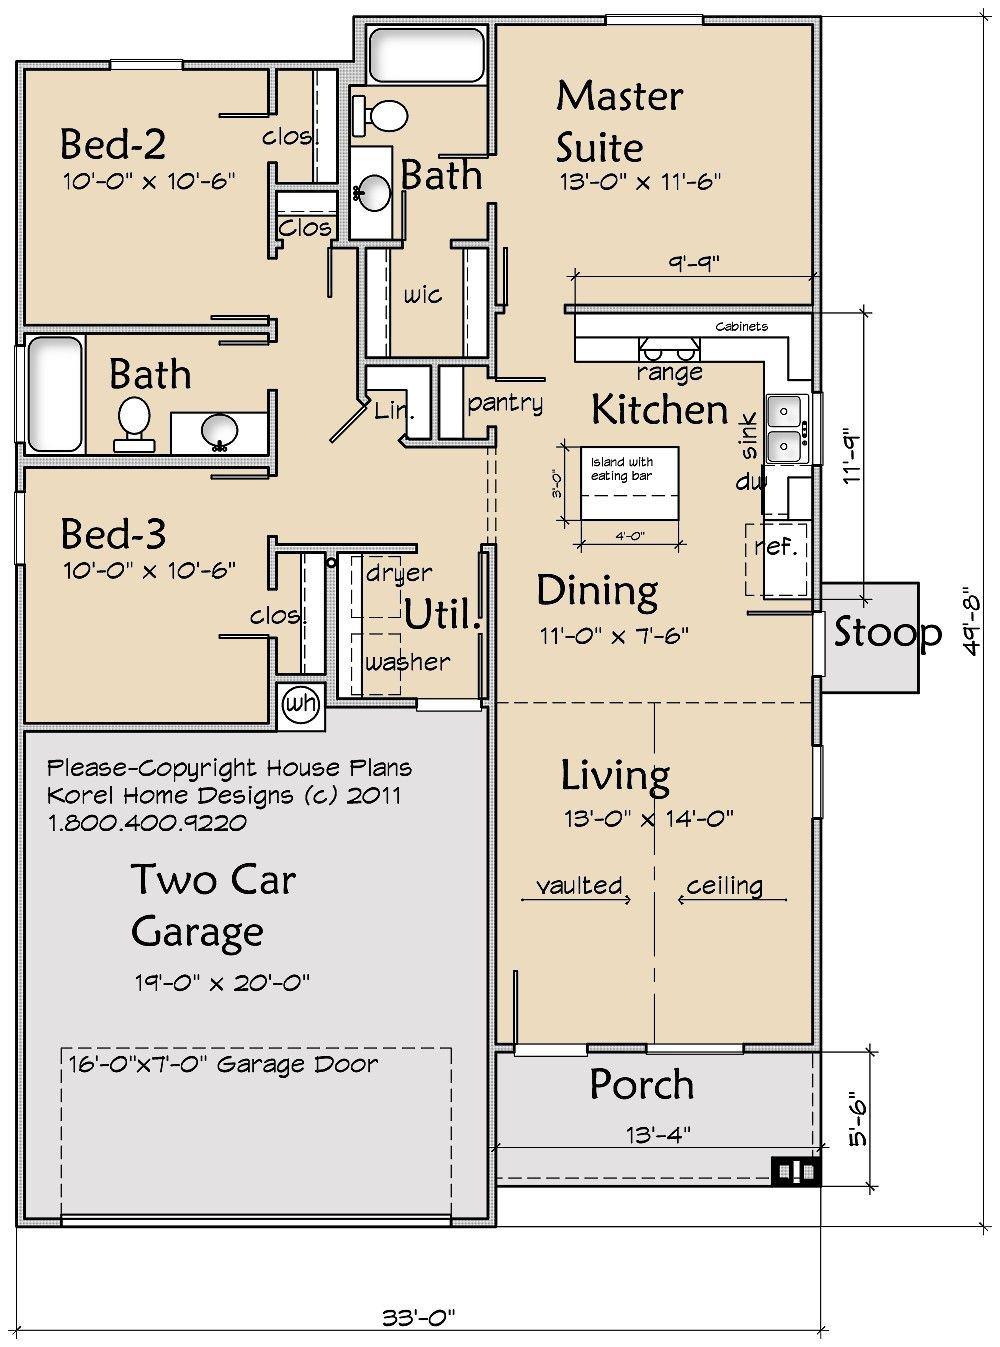 House Plans by Korel Home Designs - not a bad 1 floor plan | For the ...